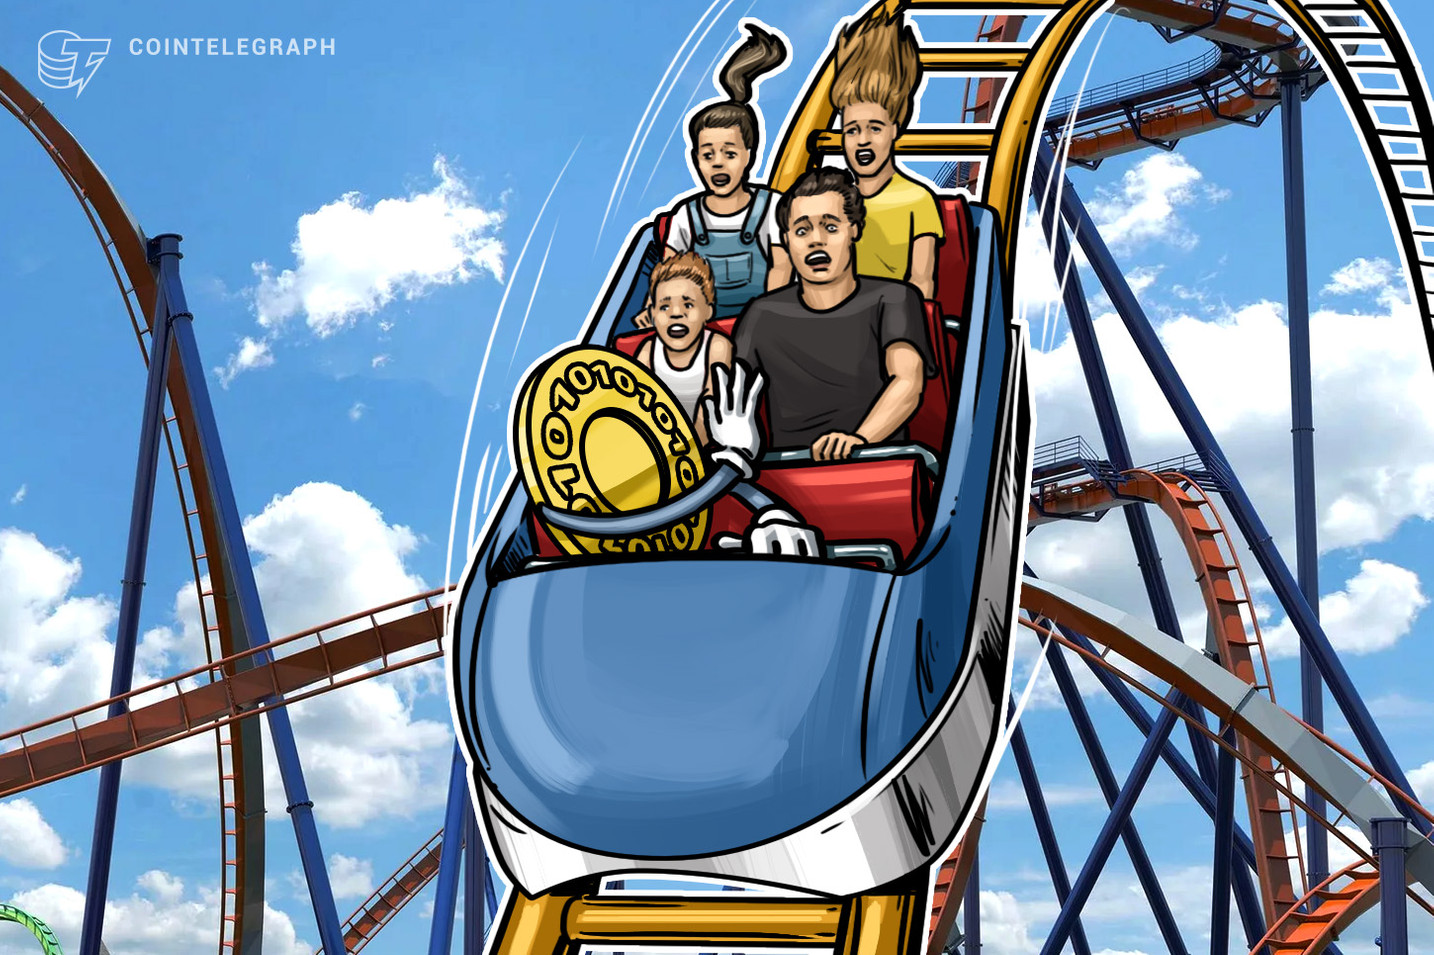 Bitcoin, Ethereum, Bitcoin Cash, Ripple, Stellar, Litecoin, Cardano, NEO, EOS: Price Analysis, April 19